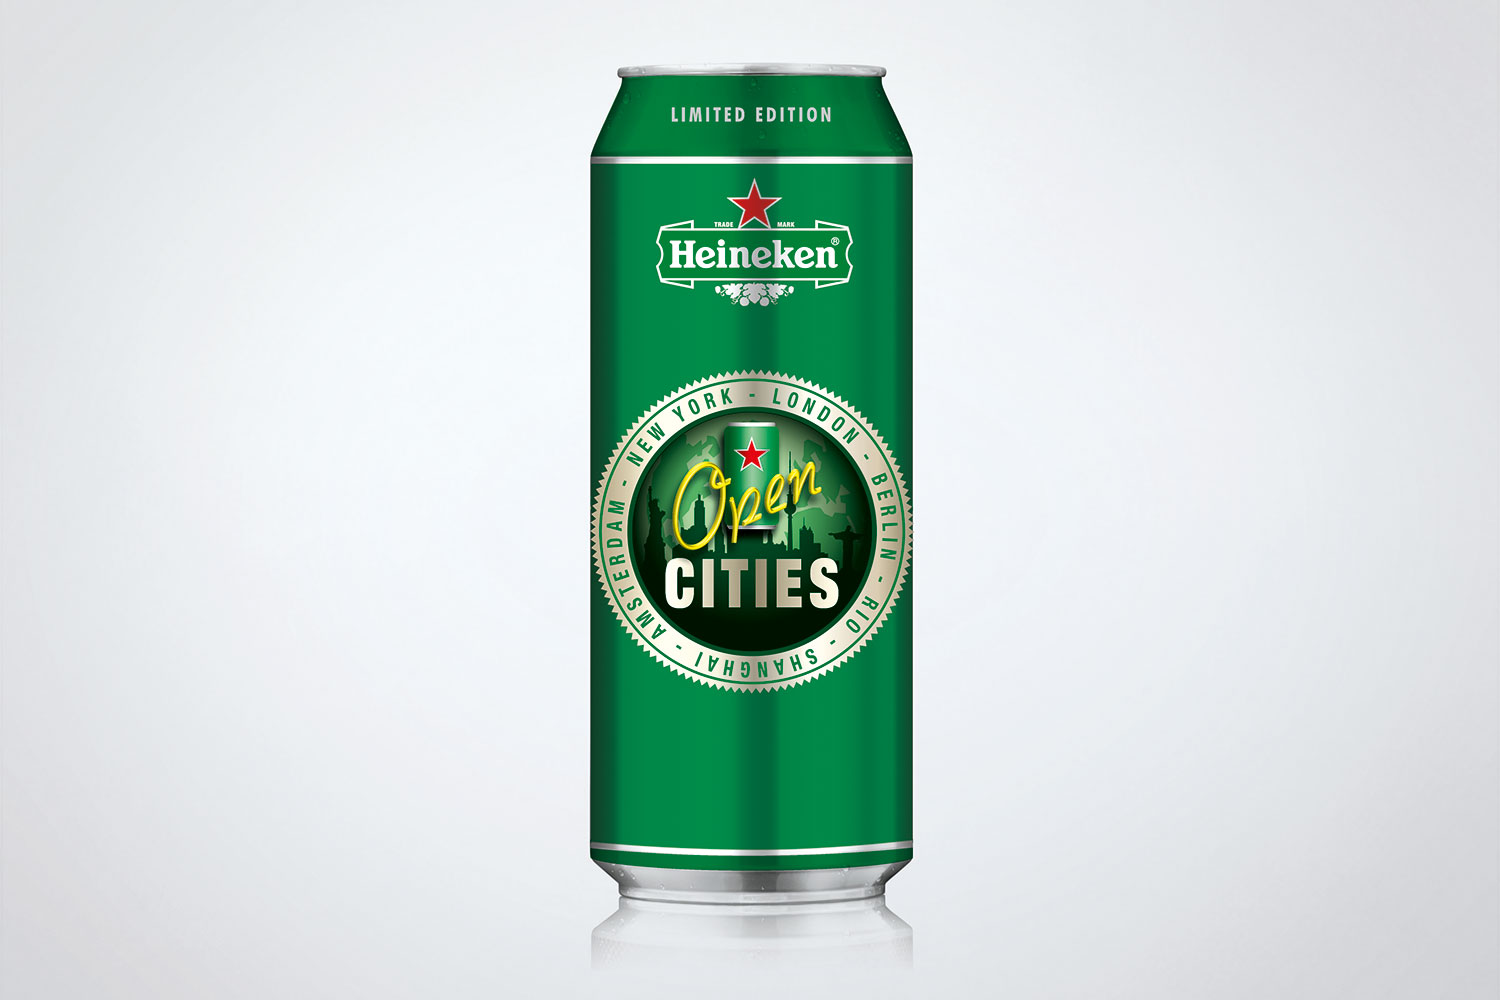 Heineken - Open Cities